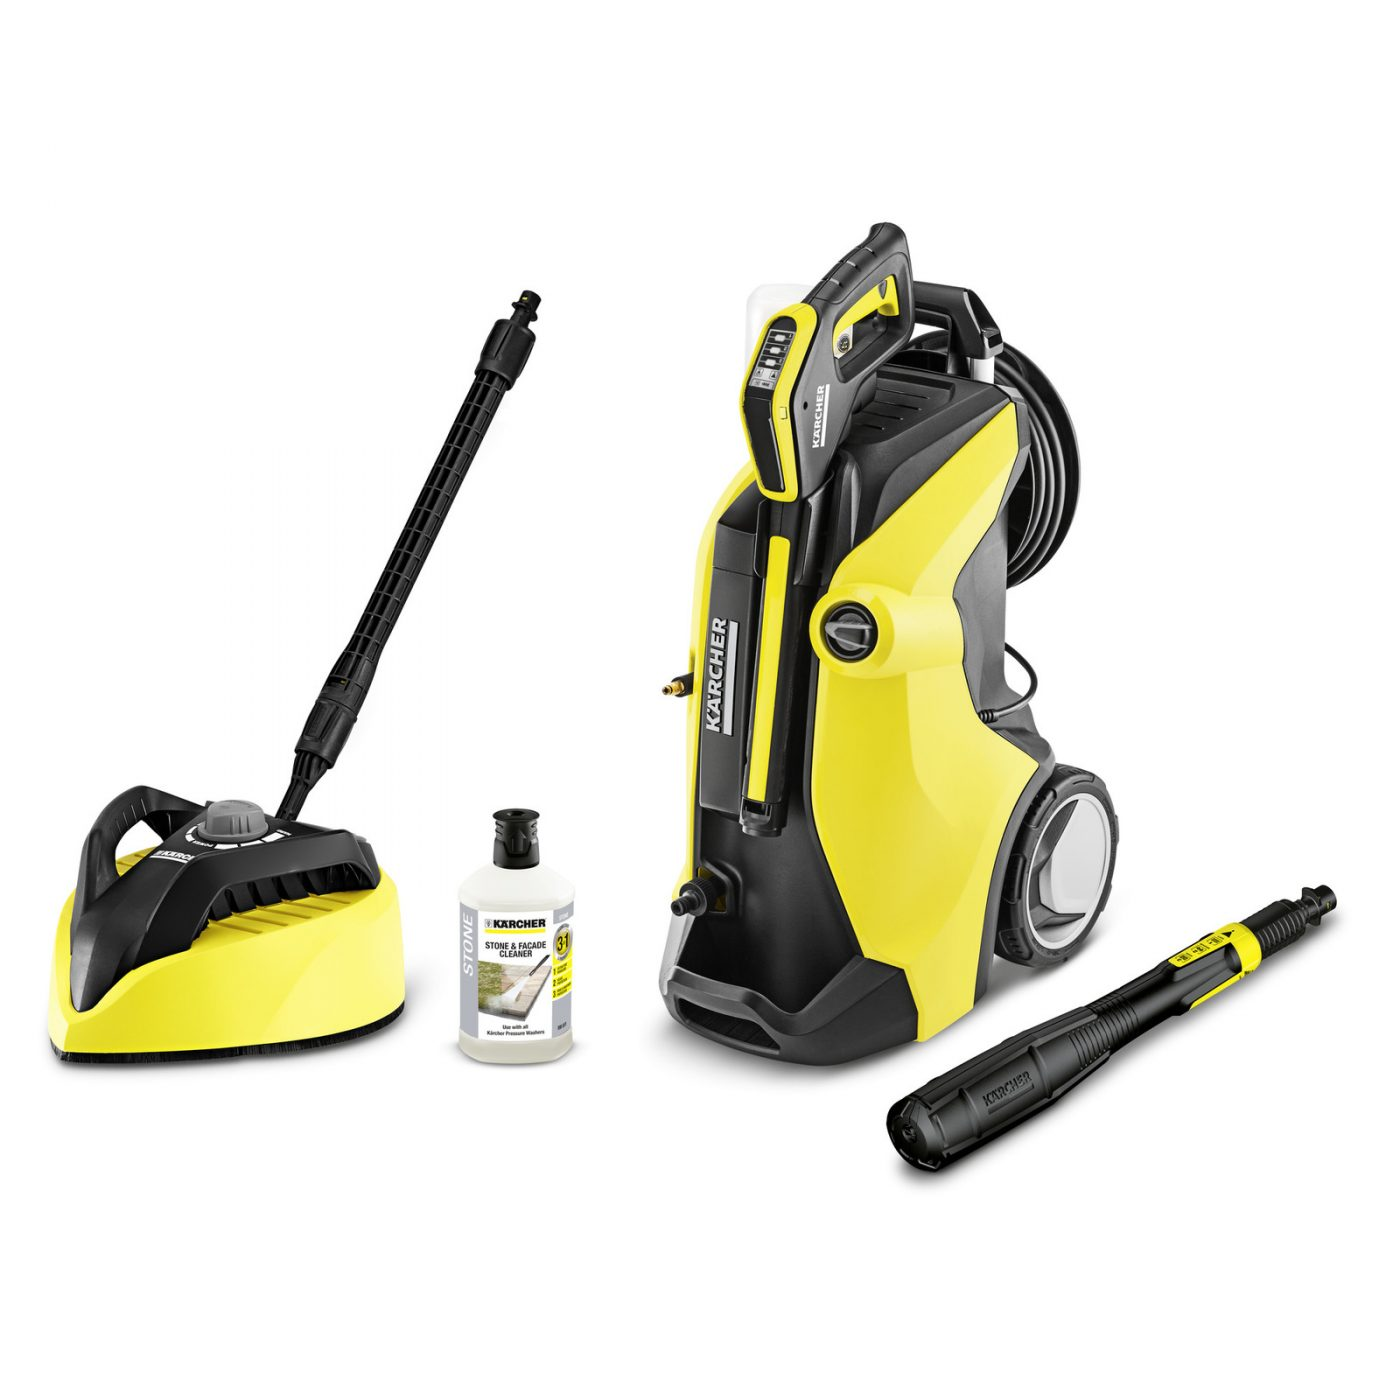 KARCHER 1.317-136.0 - K7 Premium Full control Home Pressure Washer